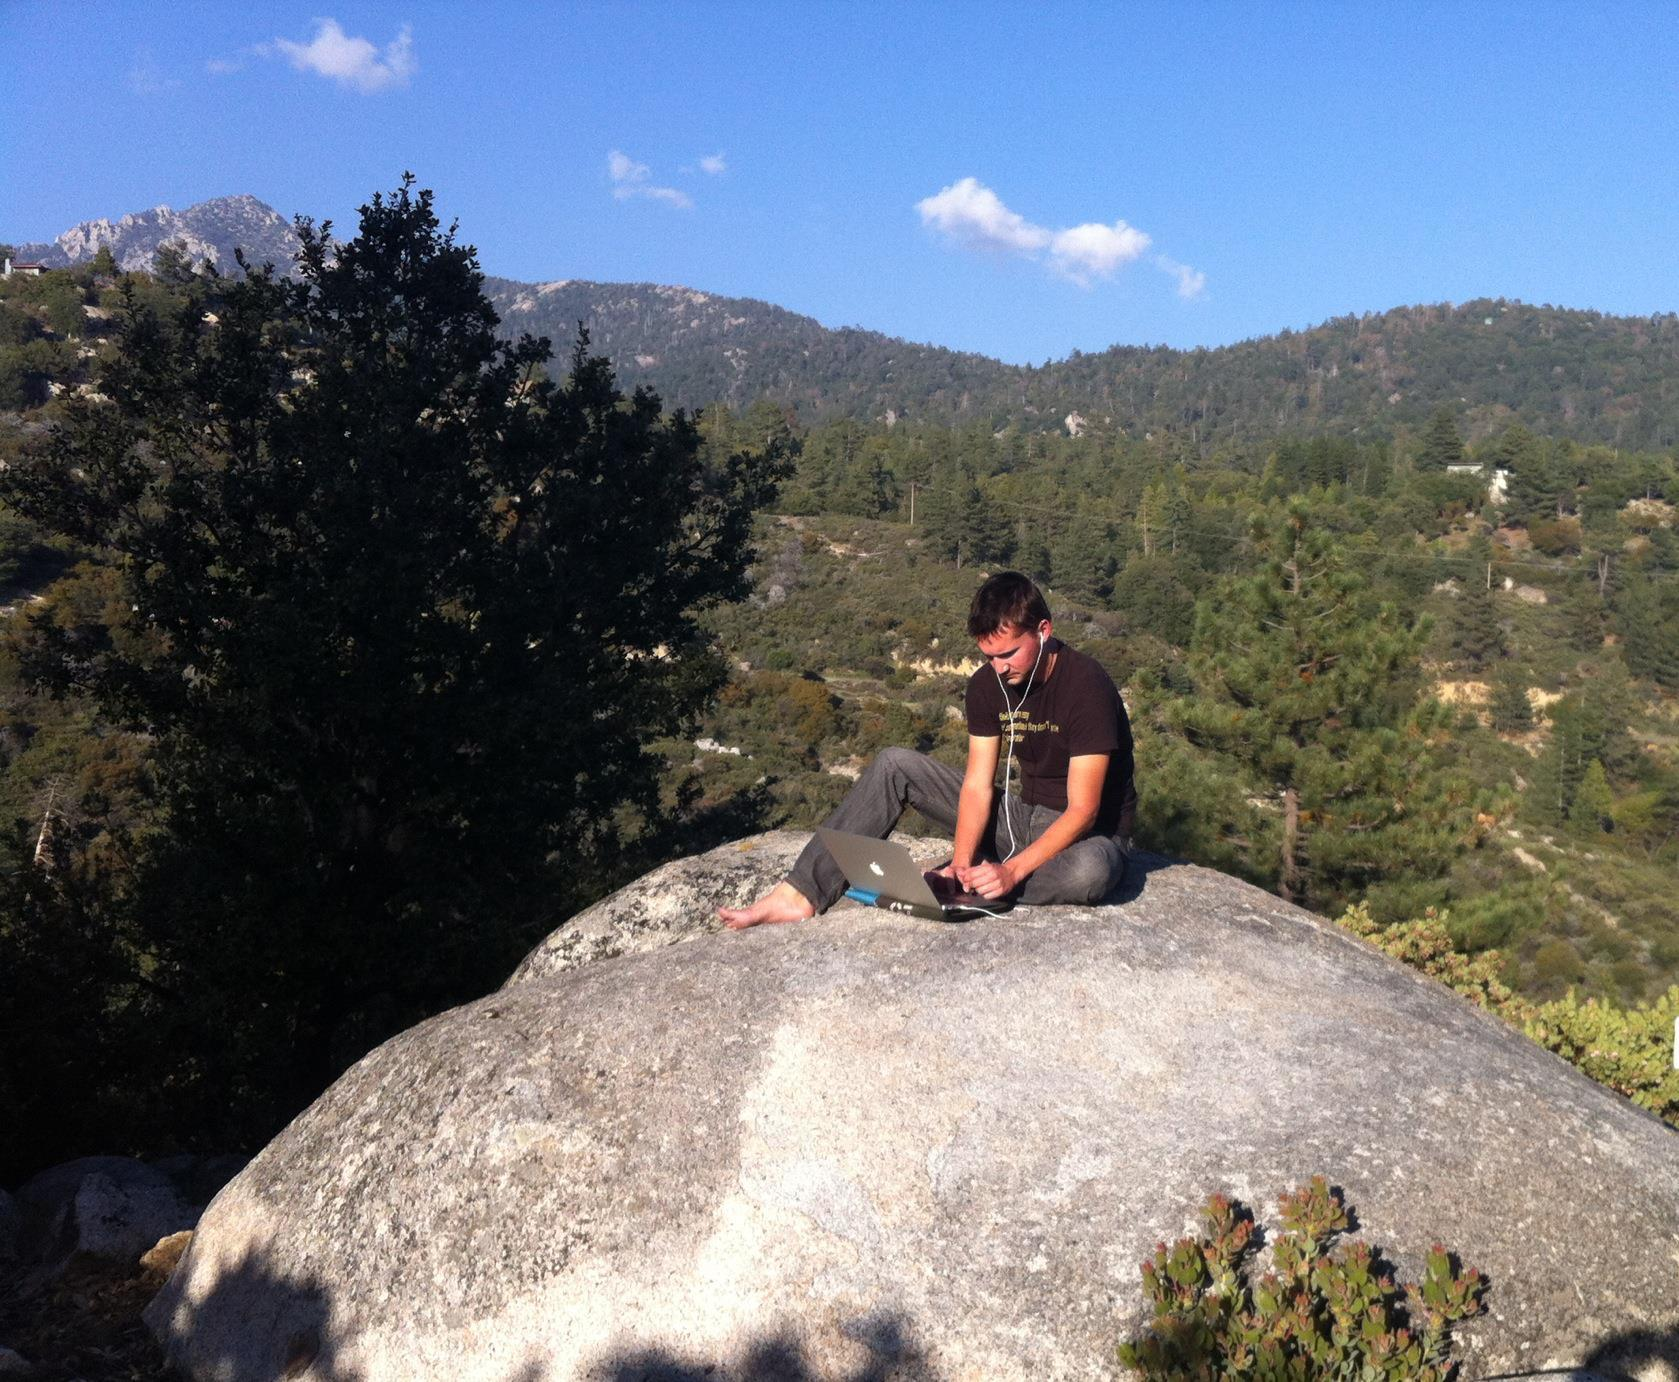 Writing music in Idyllwild.